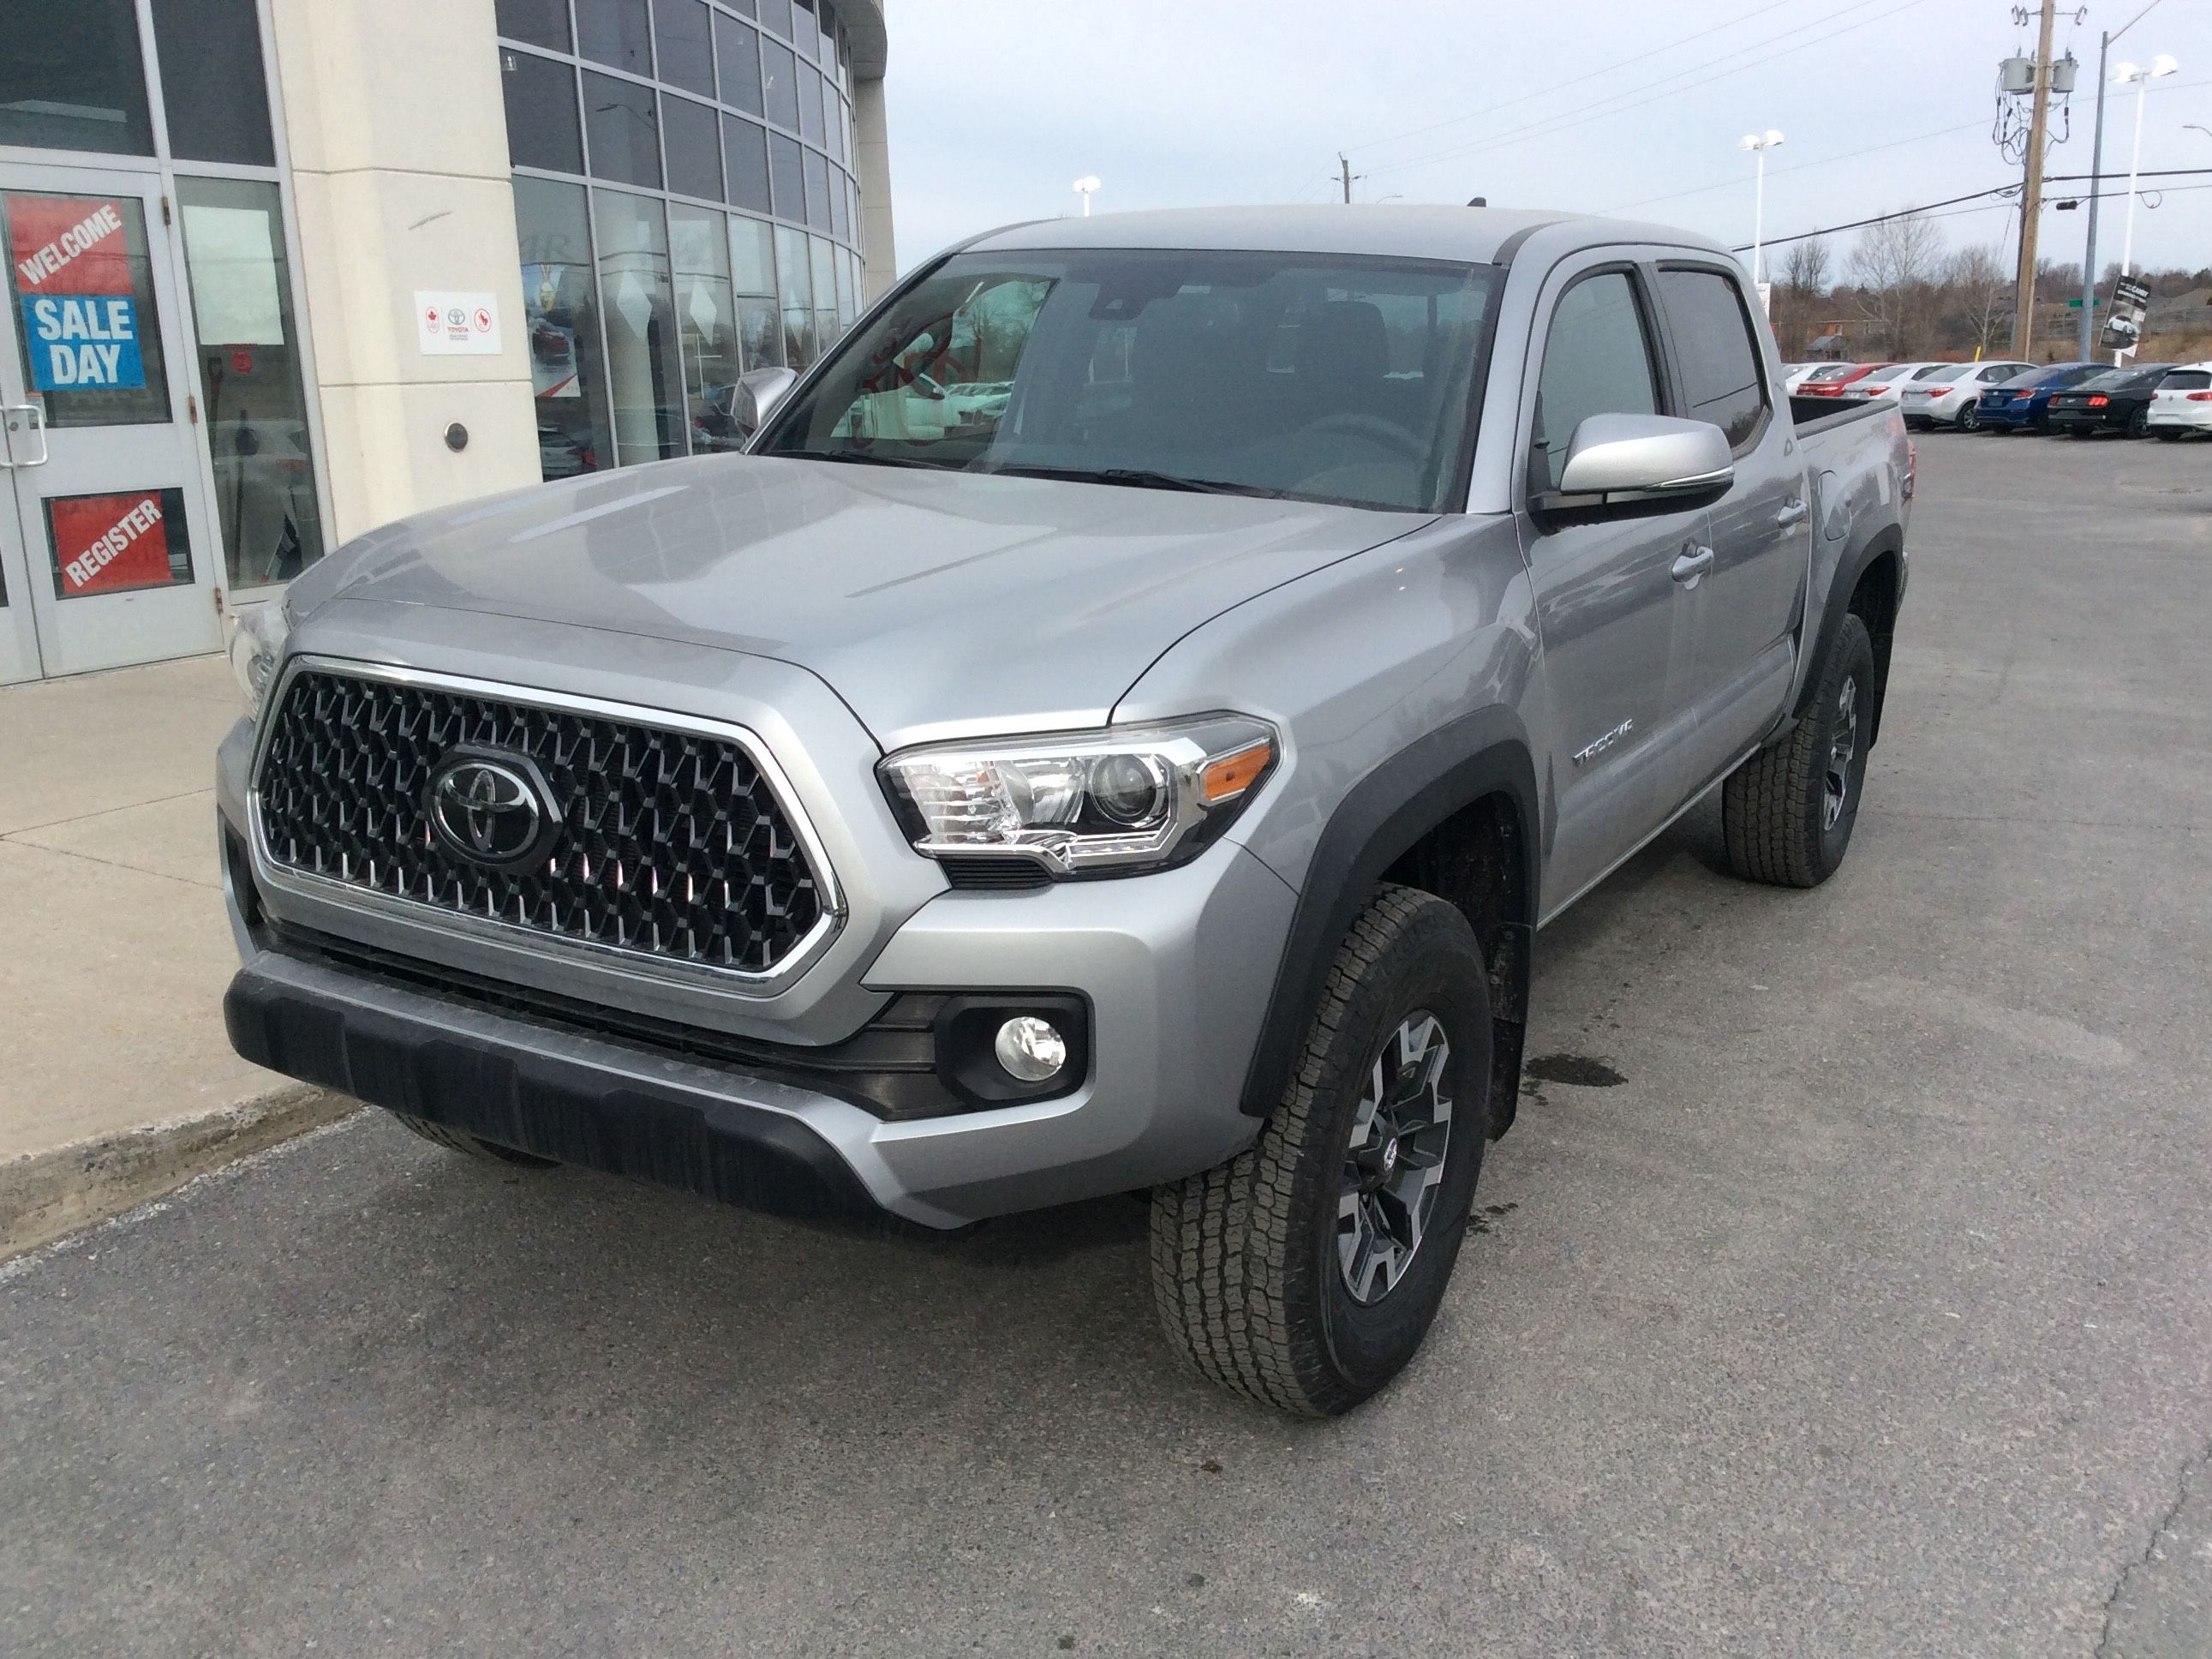 sale new vehicle tacoma toyota road en trd for off inventory short kingston in